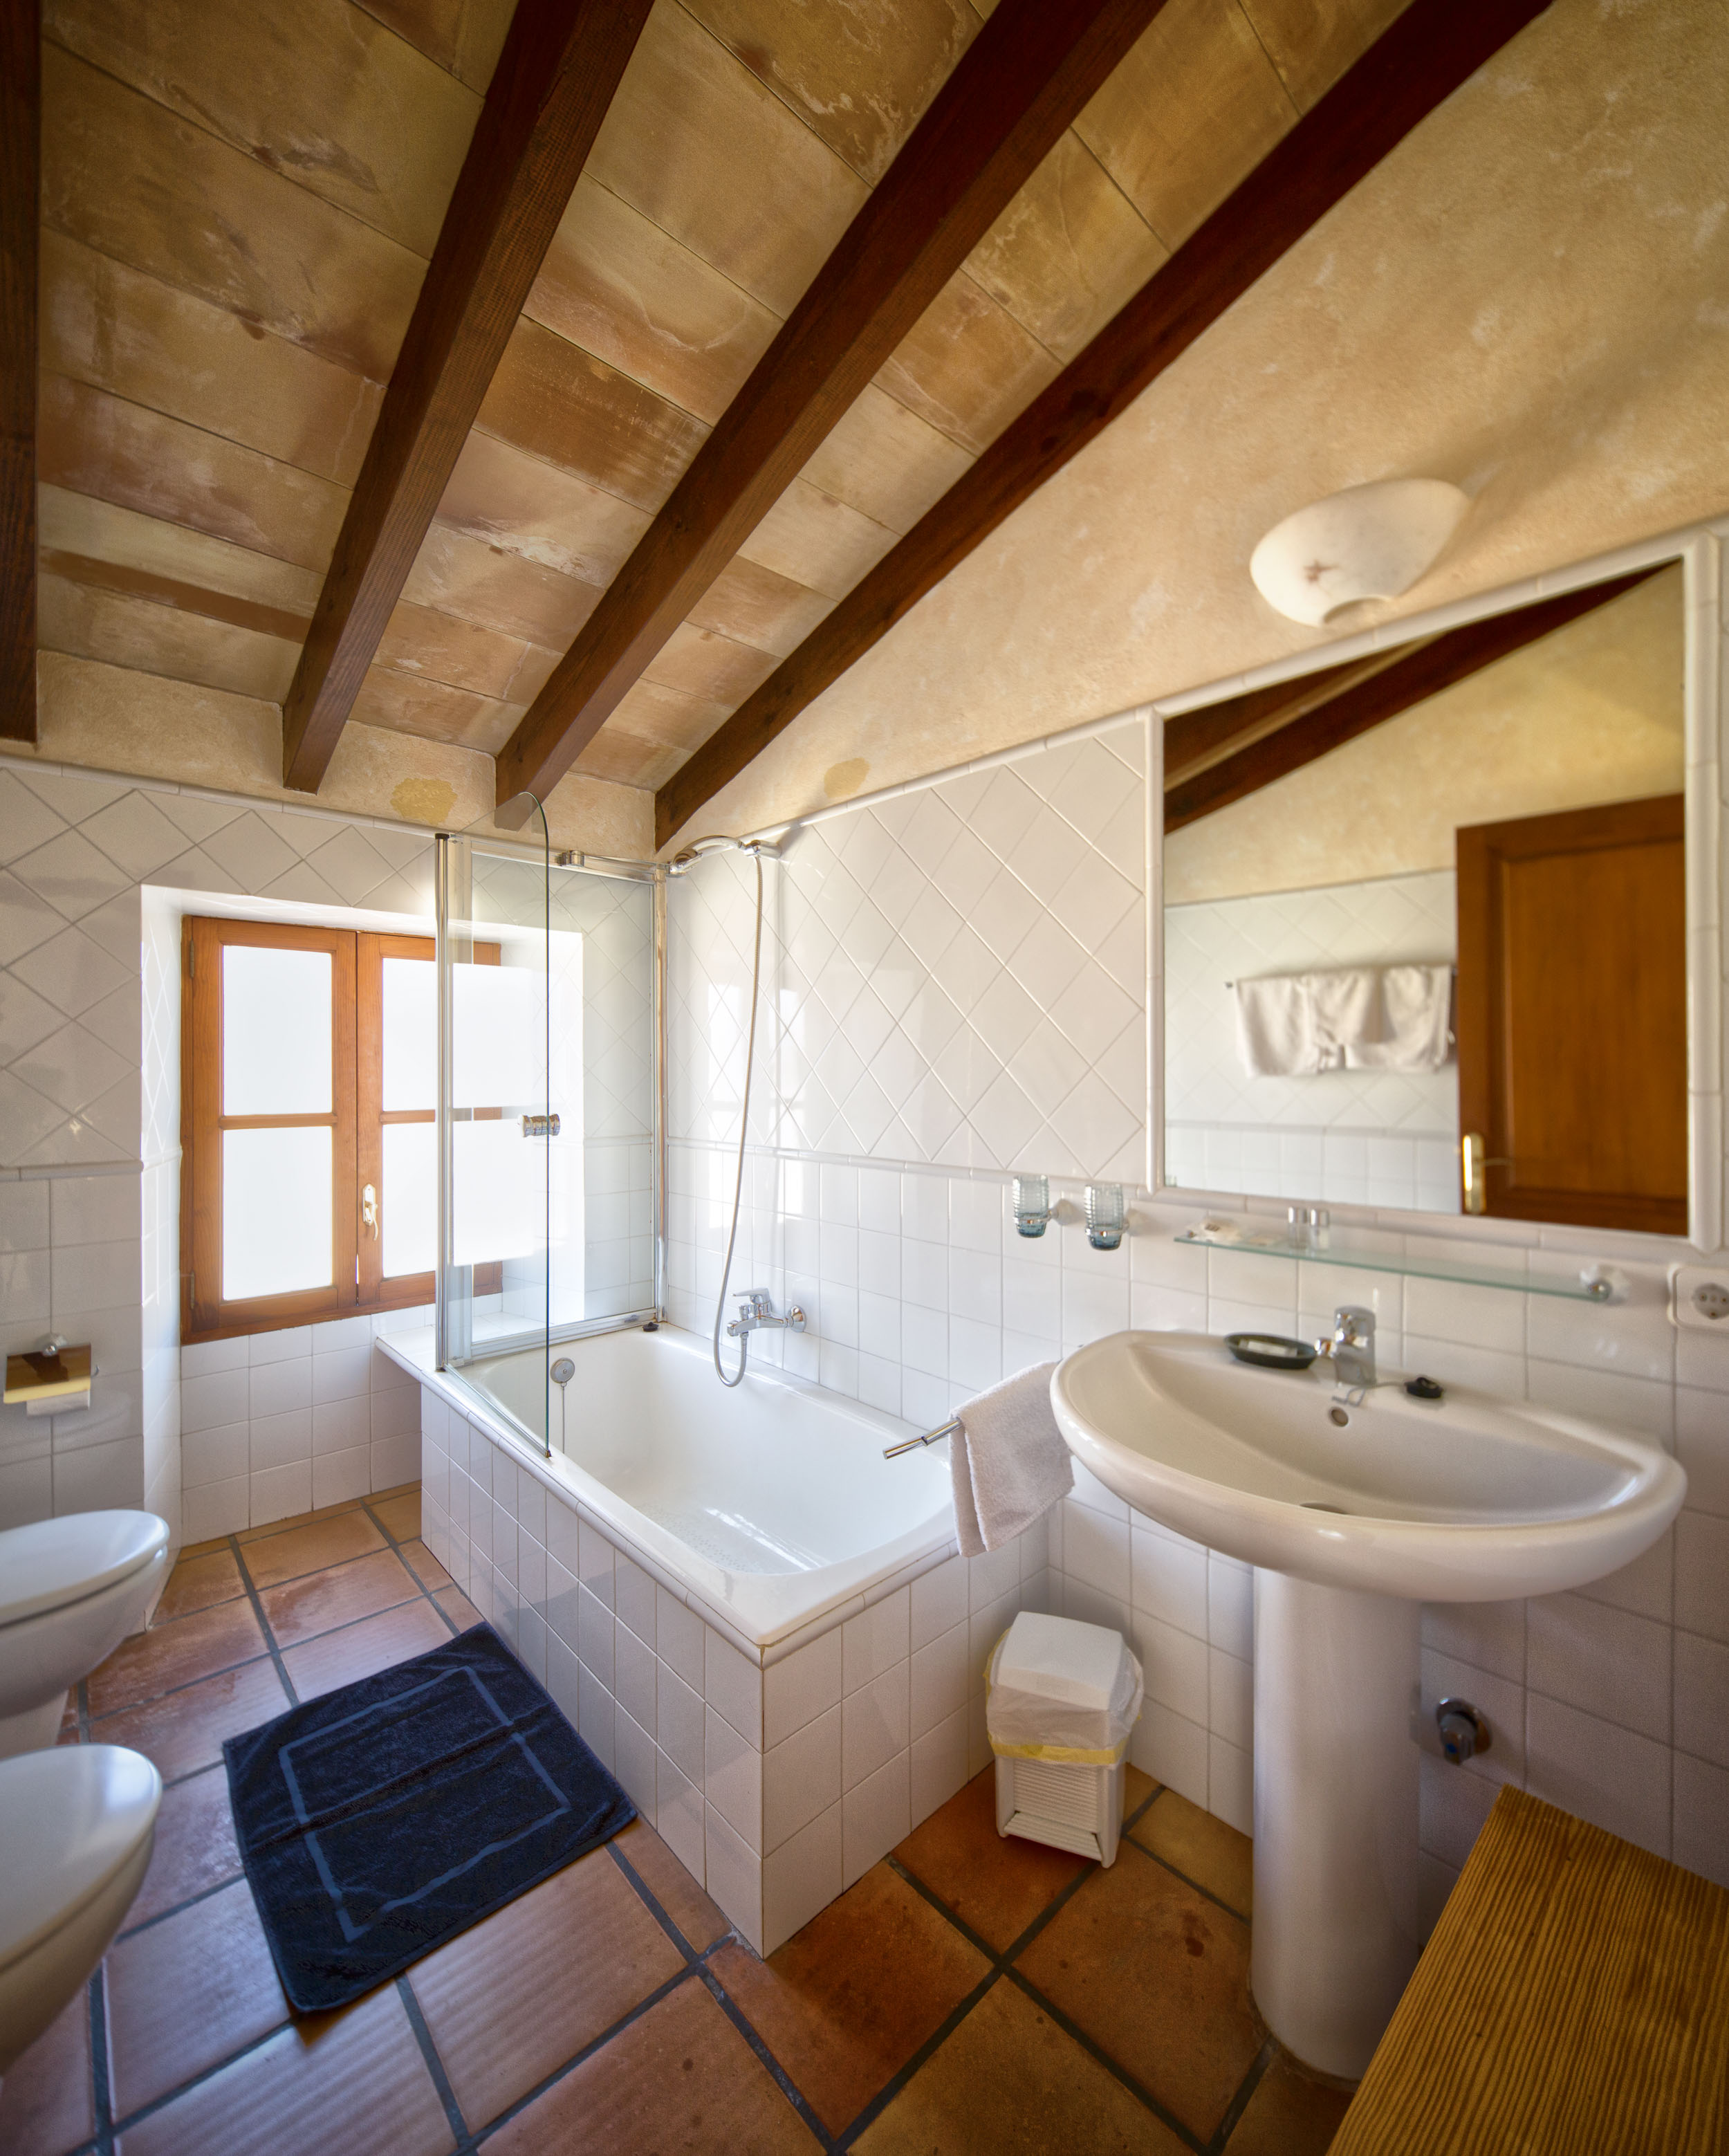 sabarcella_menorca_bathroom.jpg